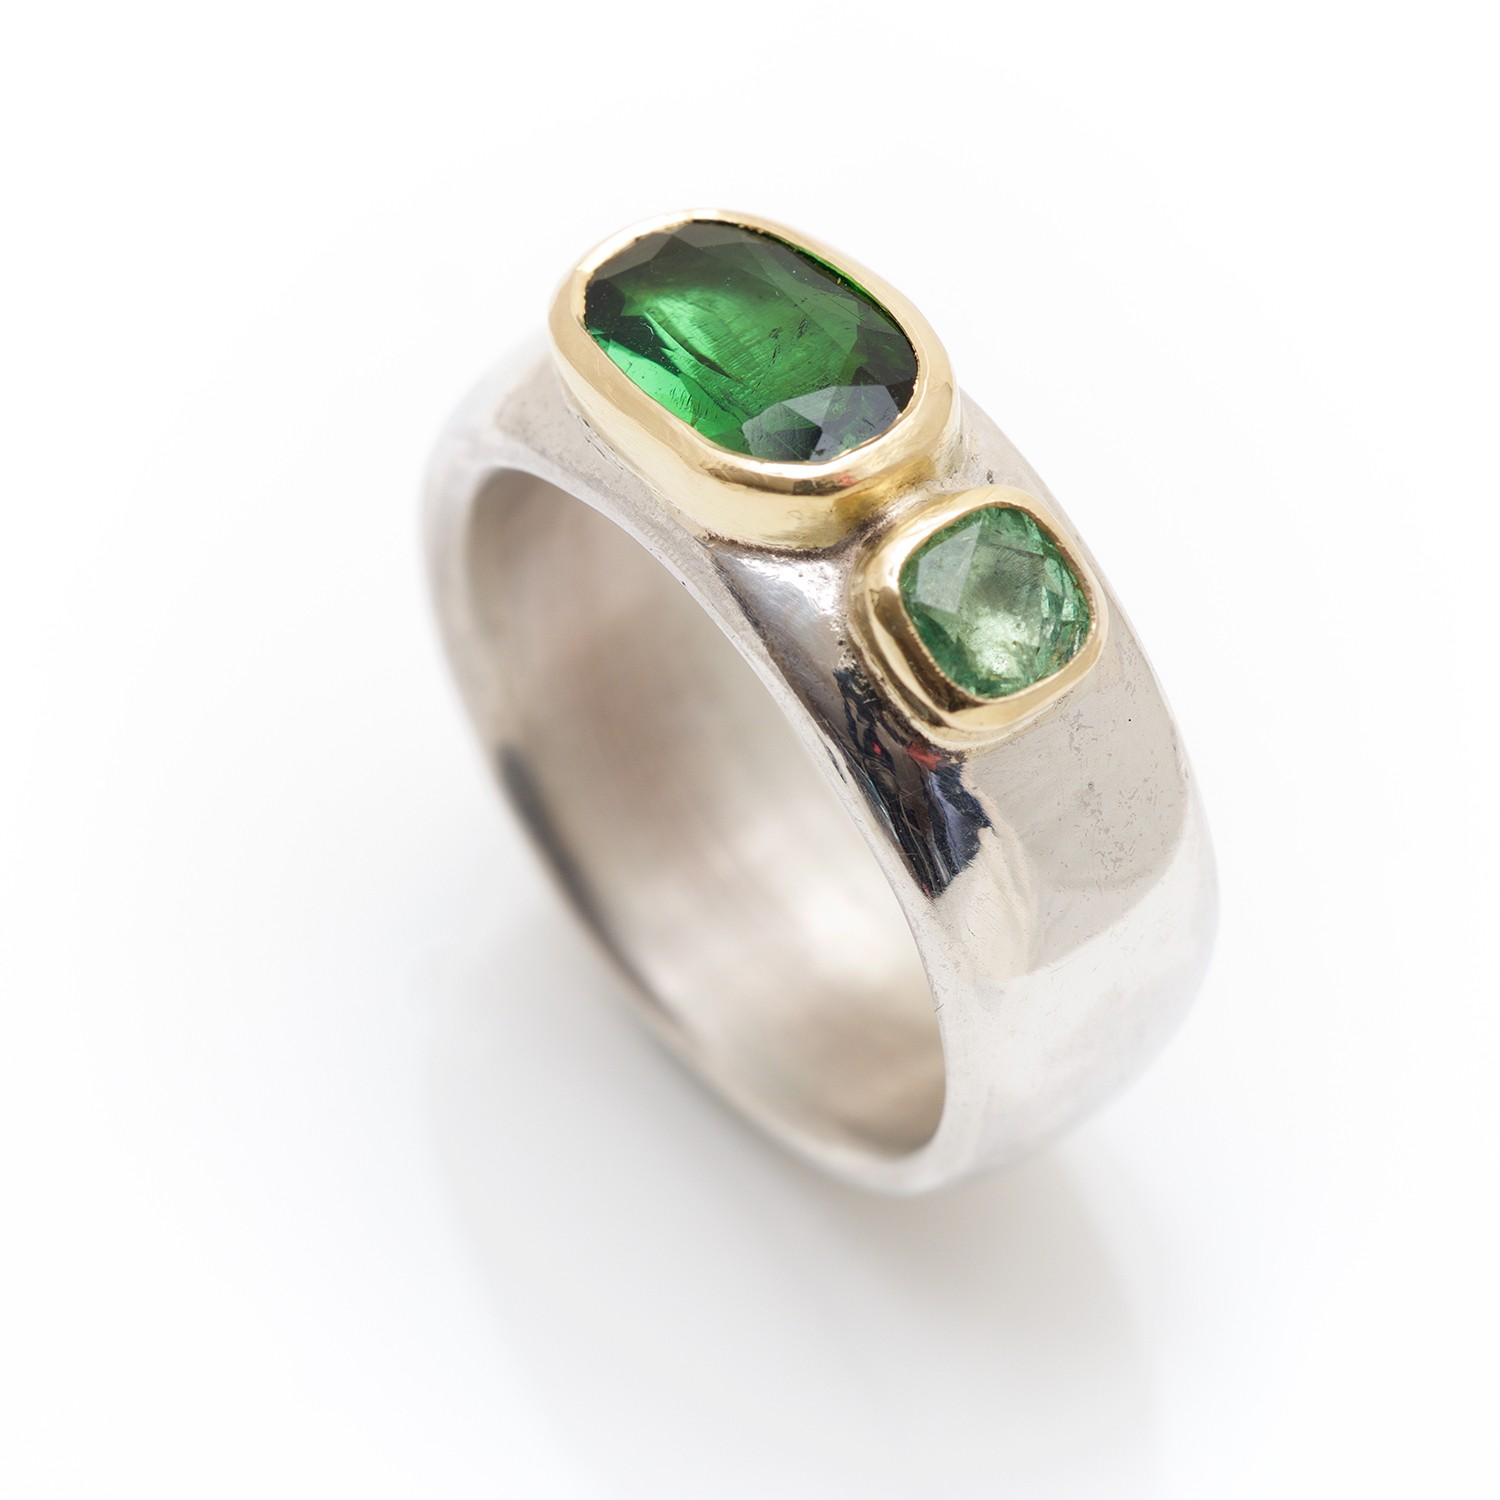 gem green jewellery store loose garnet rings ring stones catalog singapore tsavorite island